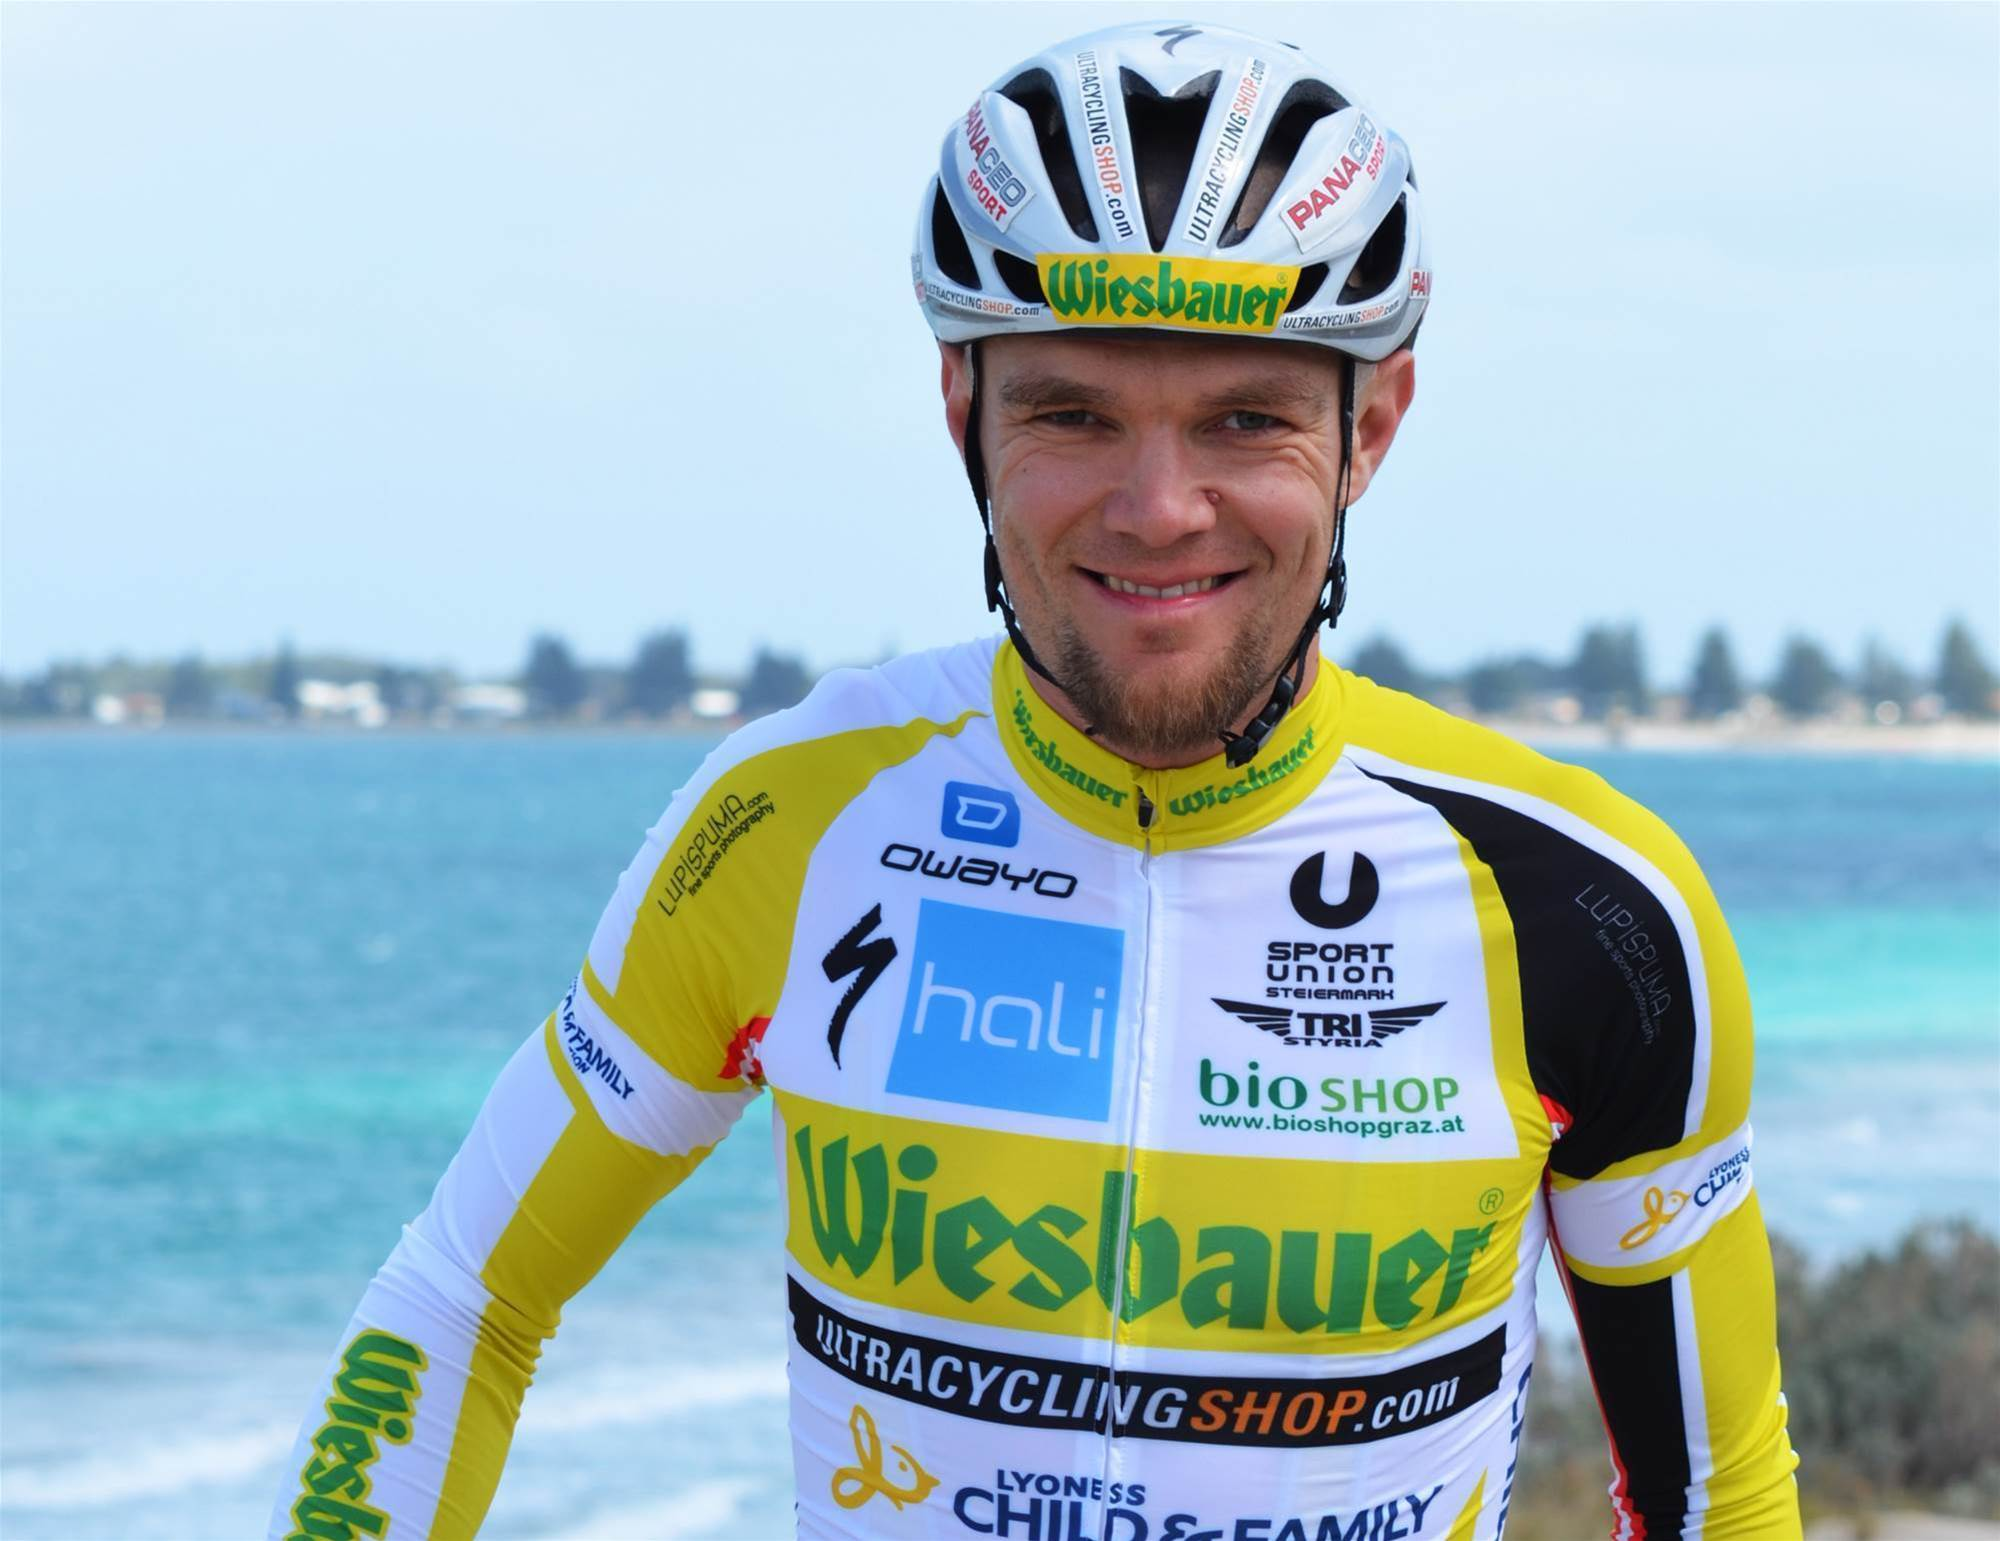 Austrian cyclist attempts record Perth-Sydney marathon ride